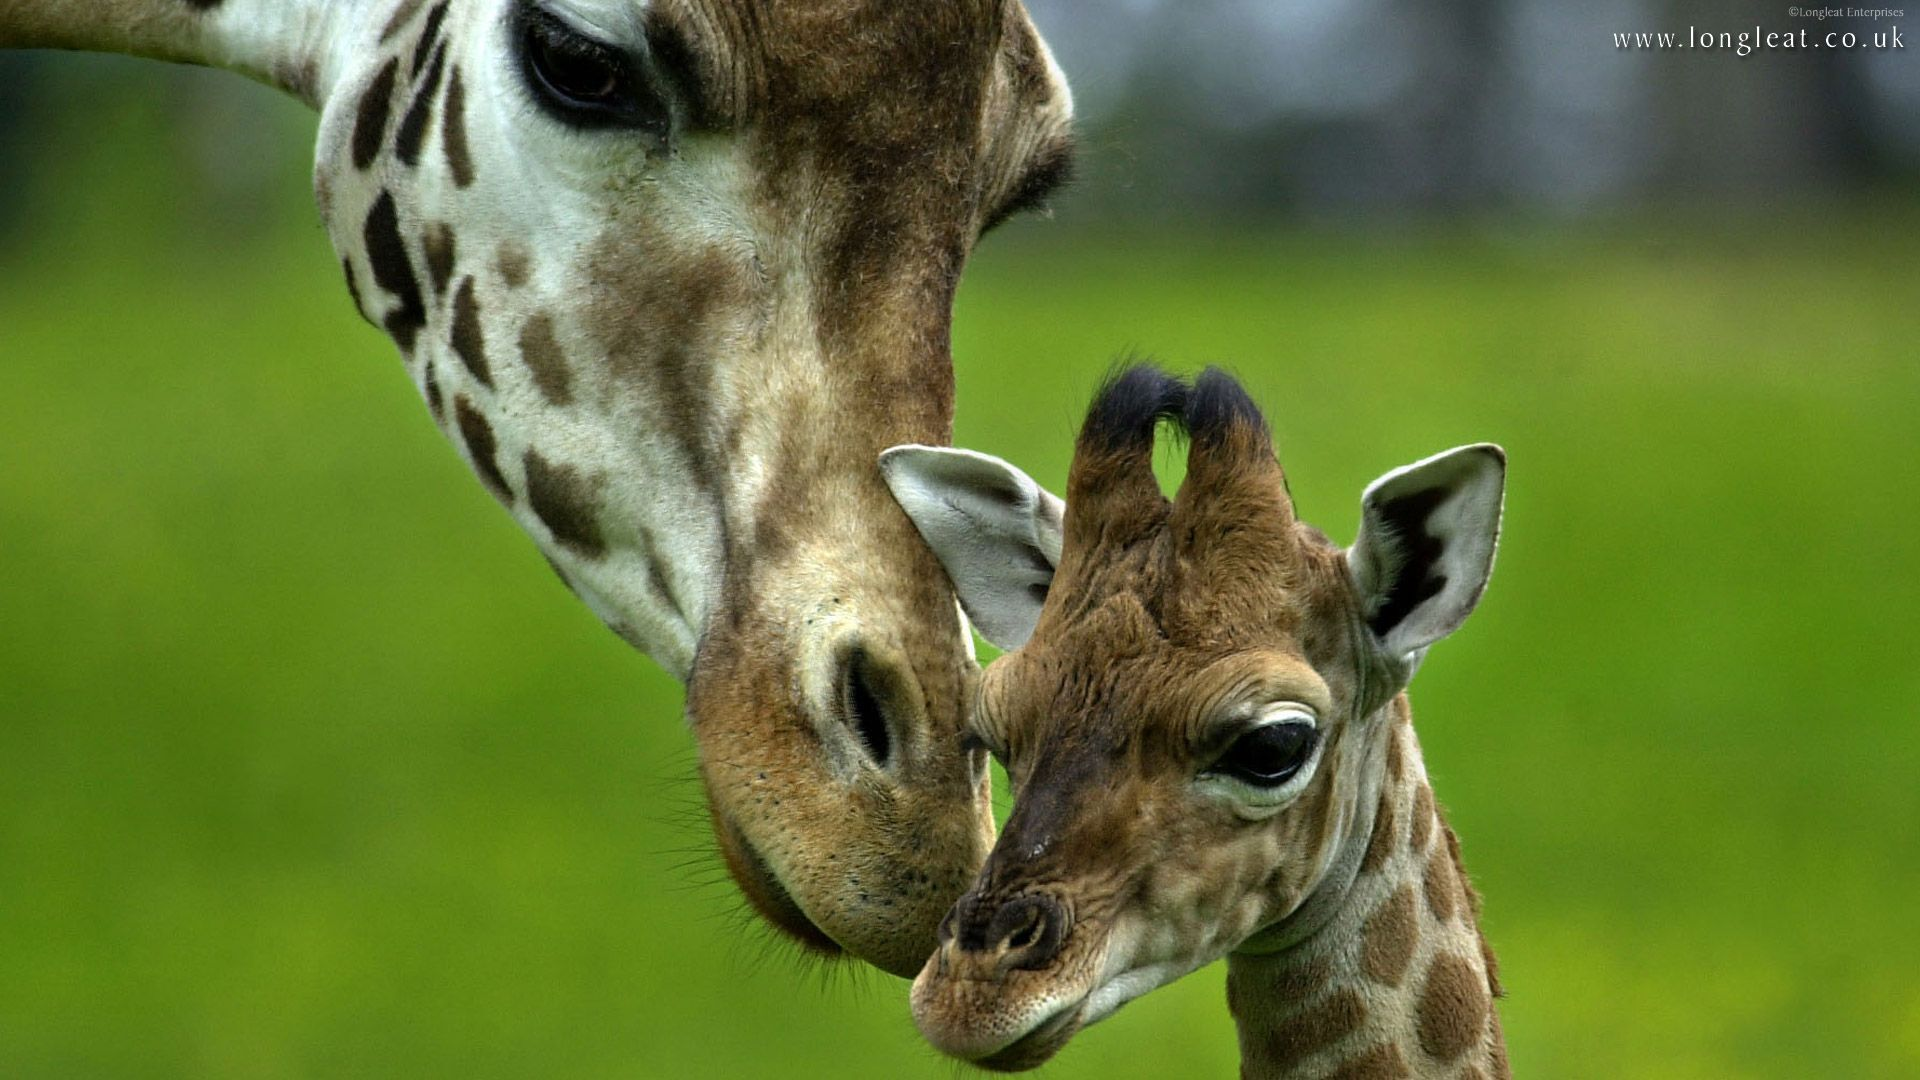 Giraffe pictures Cute animal pictures and videos blog